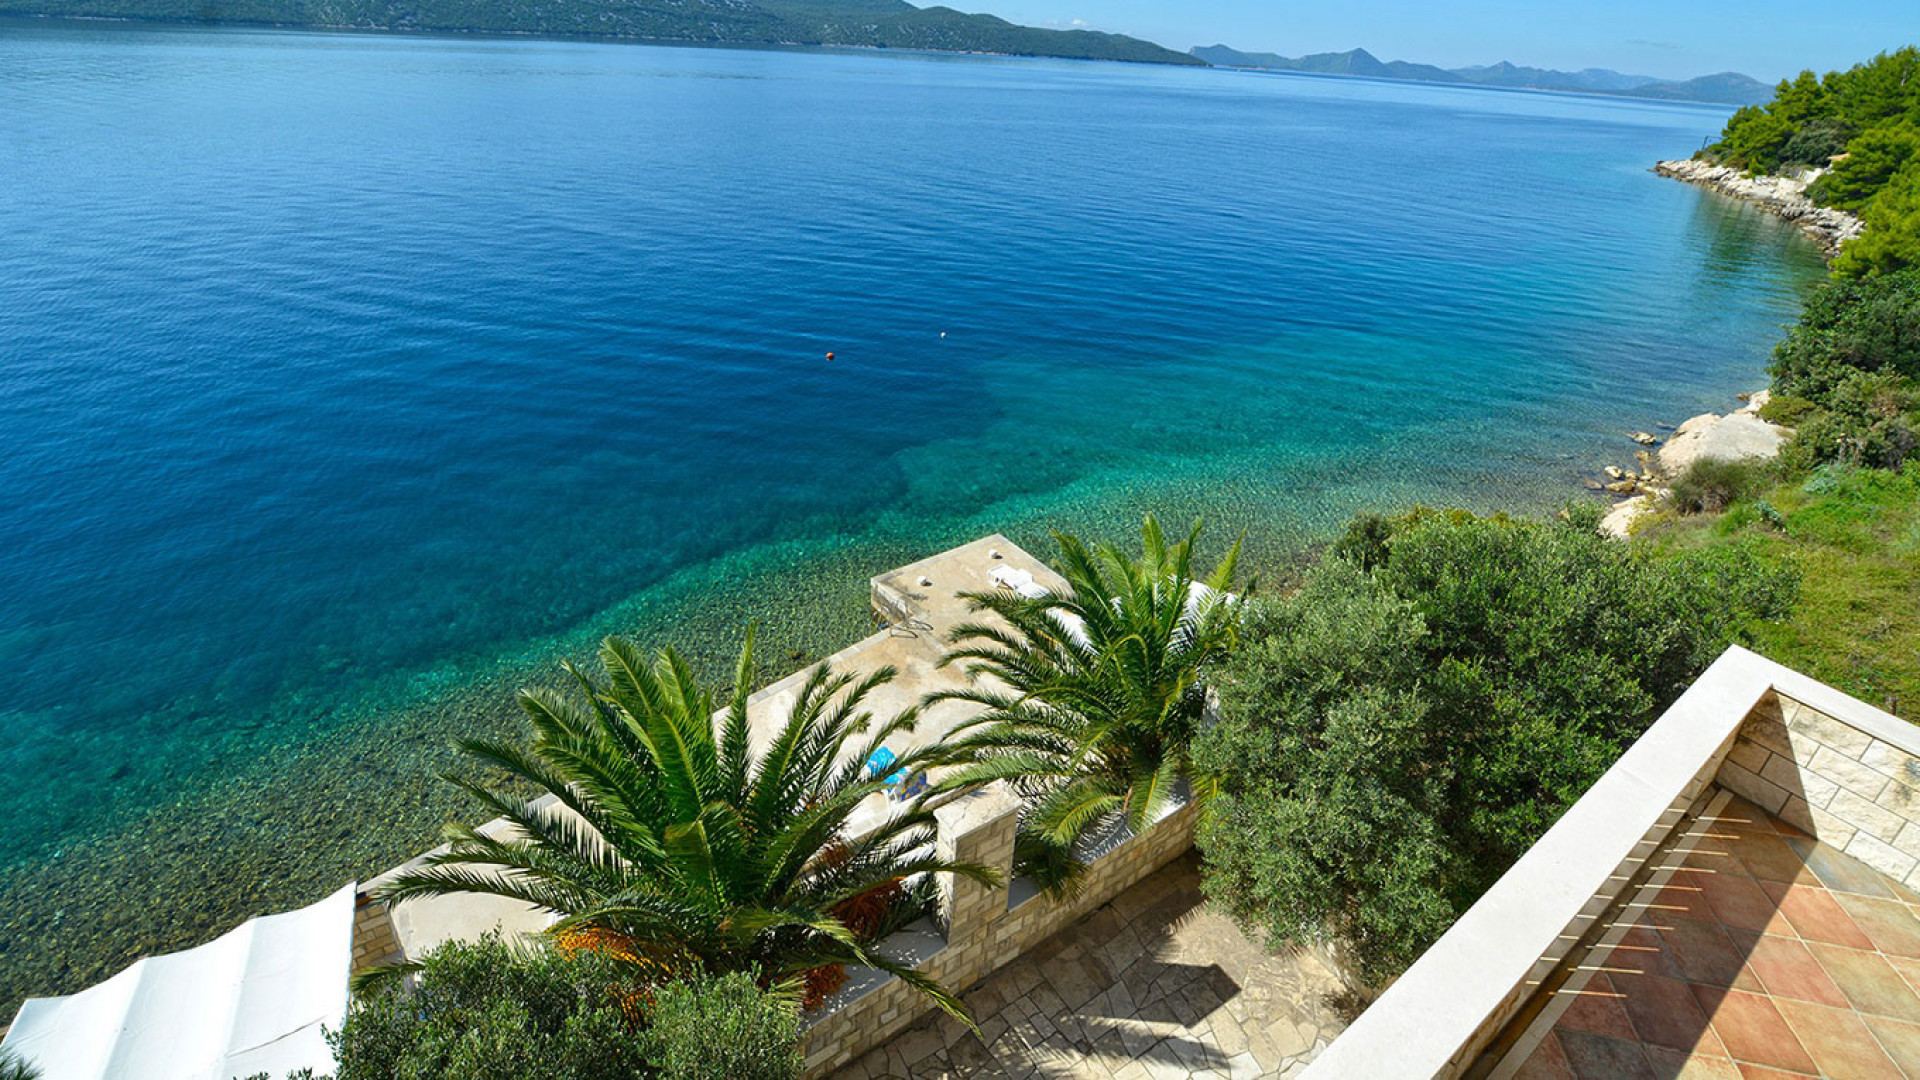 For a family holiday, Villa Ratac is hard to beat, with a beach-front deck, beautiful Mediterranean gardens and pavillions.